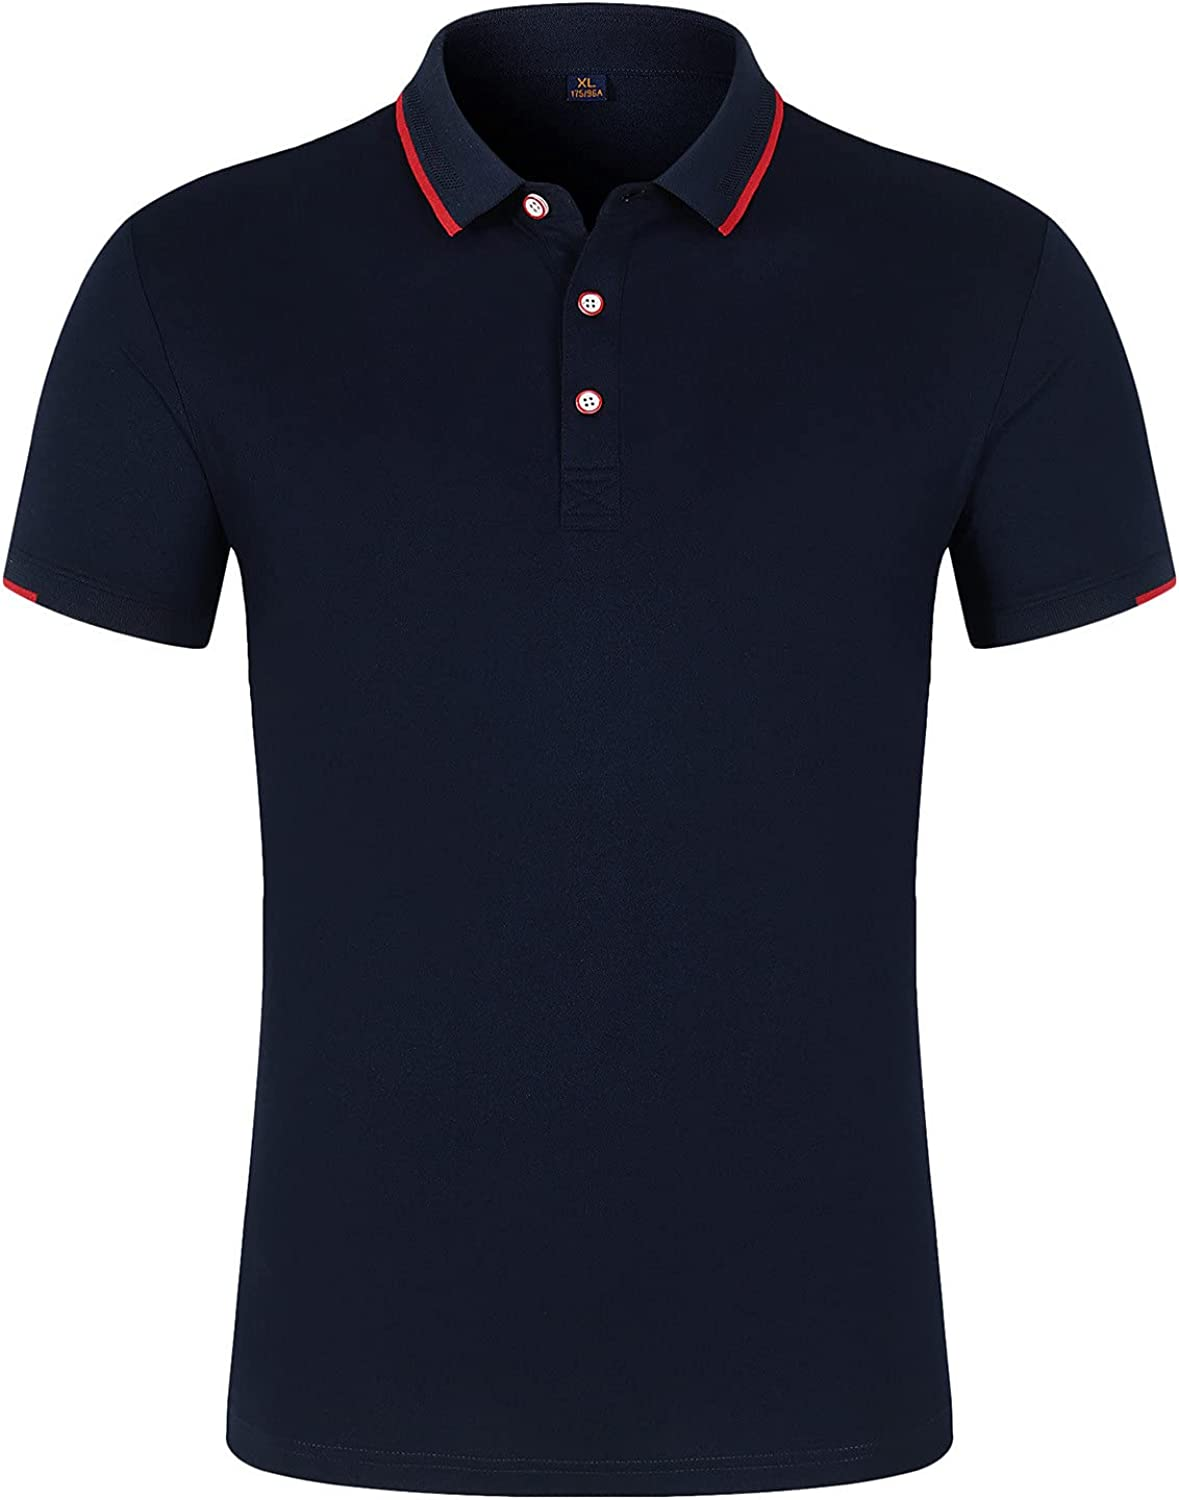 Mens Short-Sleeve Slim Fit Pique Polo Shirt Cotton Clothes Henley T-Shirts Business Casual Shirts Tops